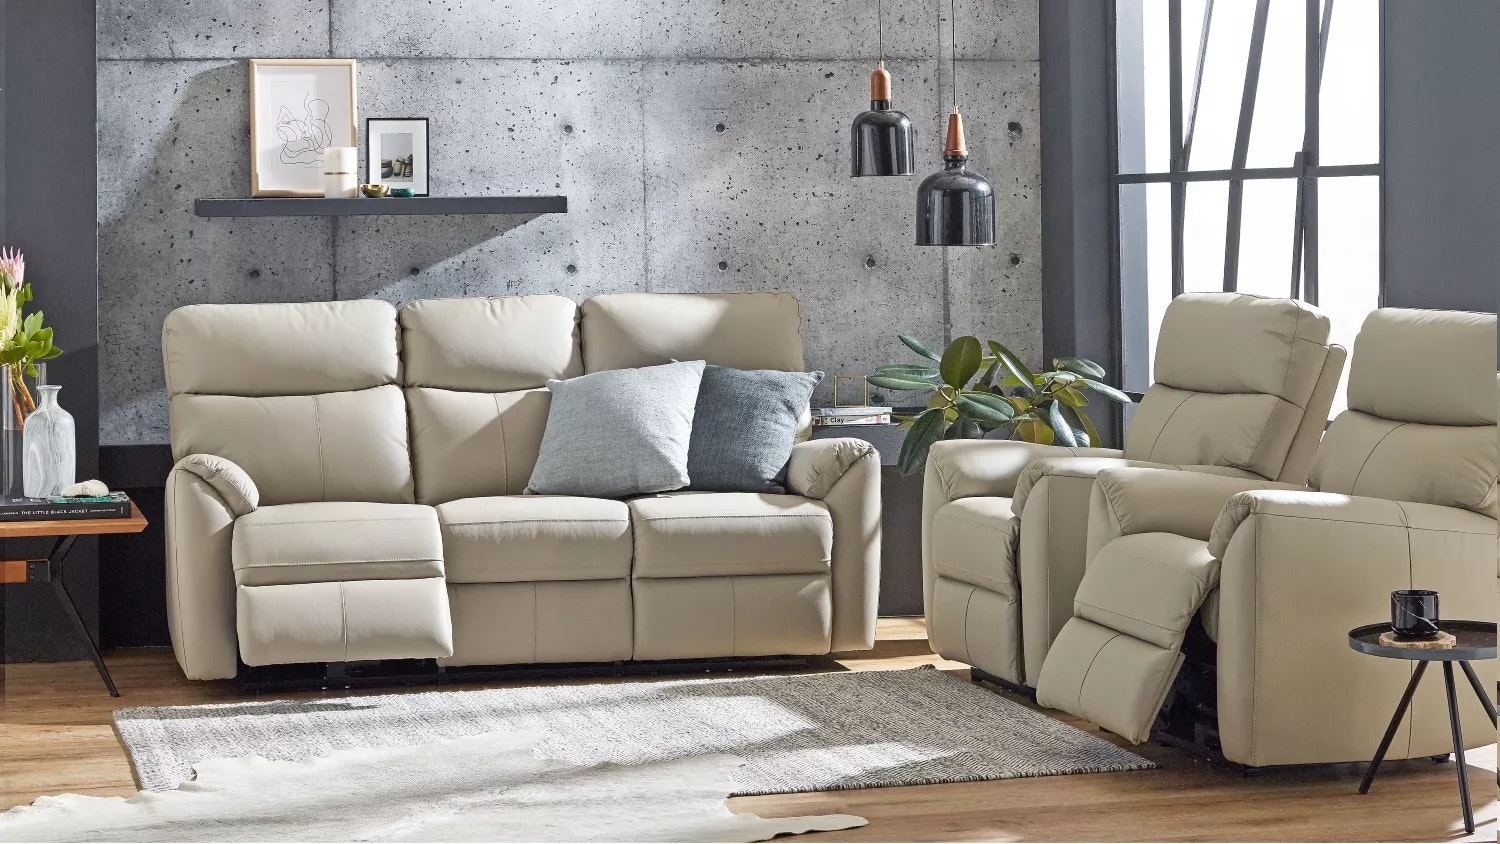 Montague Leather Recliner with Electric Reclining Action - Mist